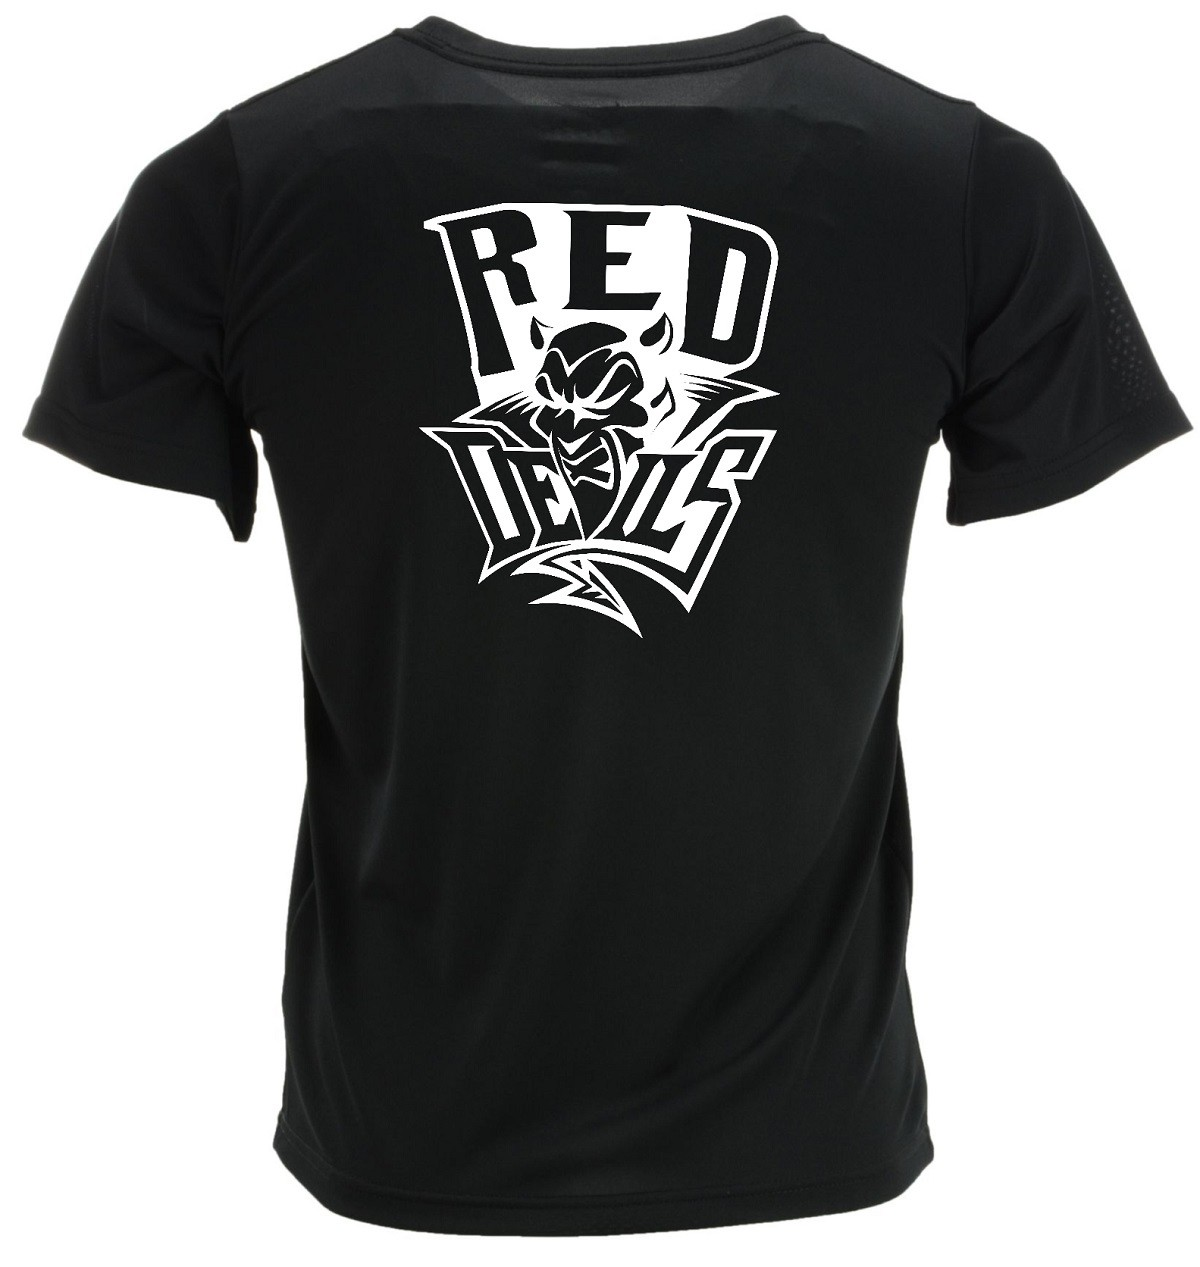 VVS Red Devils Men's Moisture Wicking T-Shirt